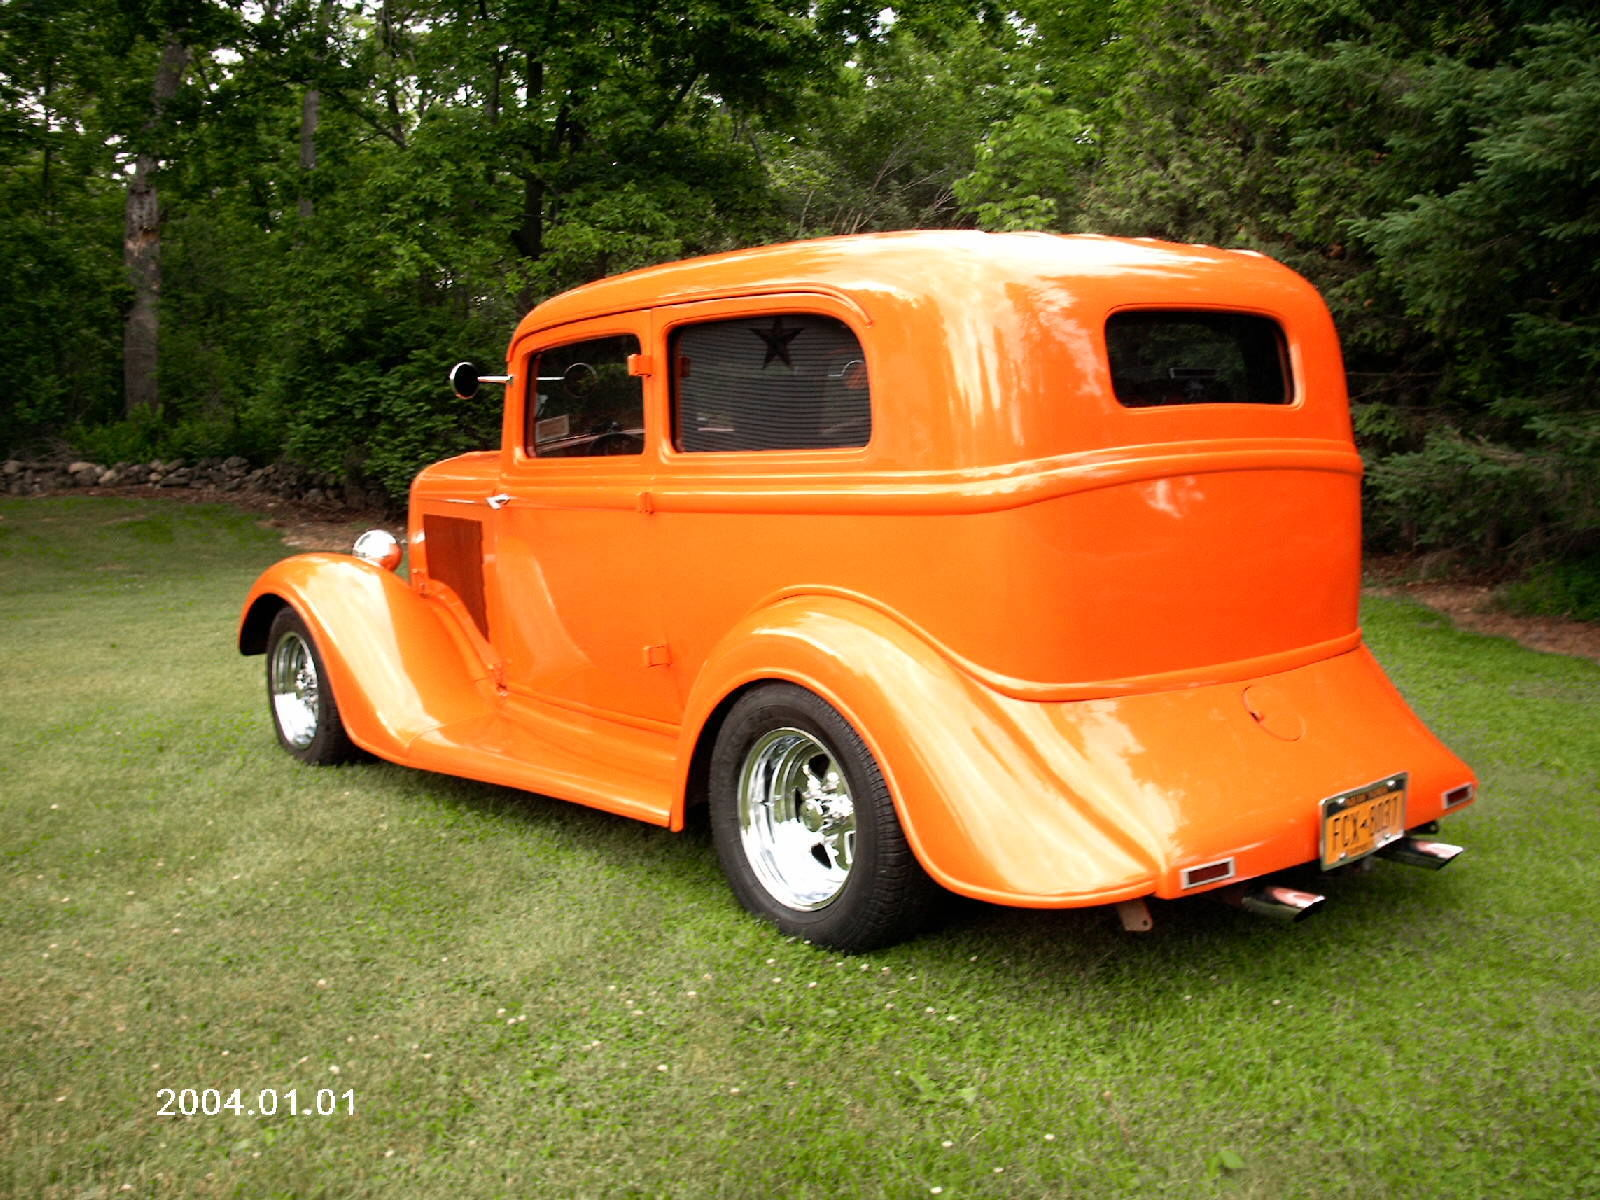 1934 34 plymouth 2 door sedan street rod hot rod streetrod for 1934 plymouth 2 door sedan